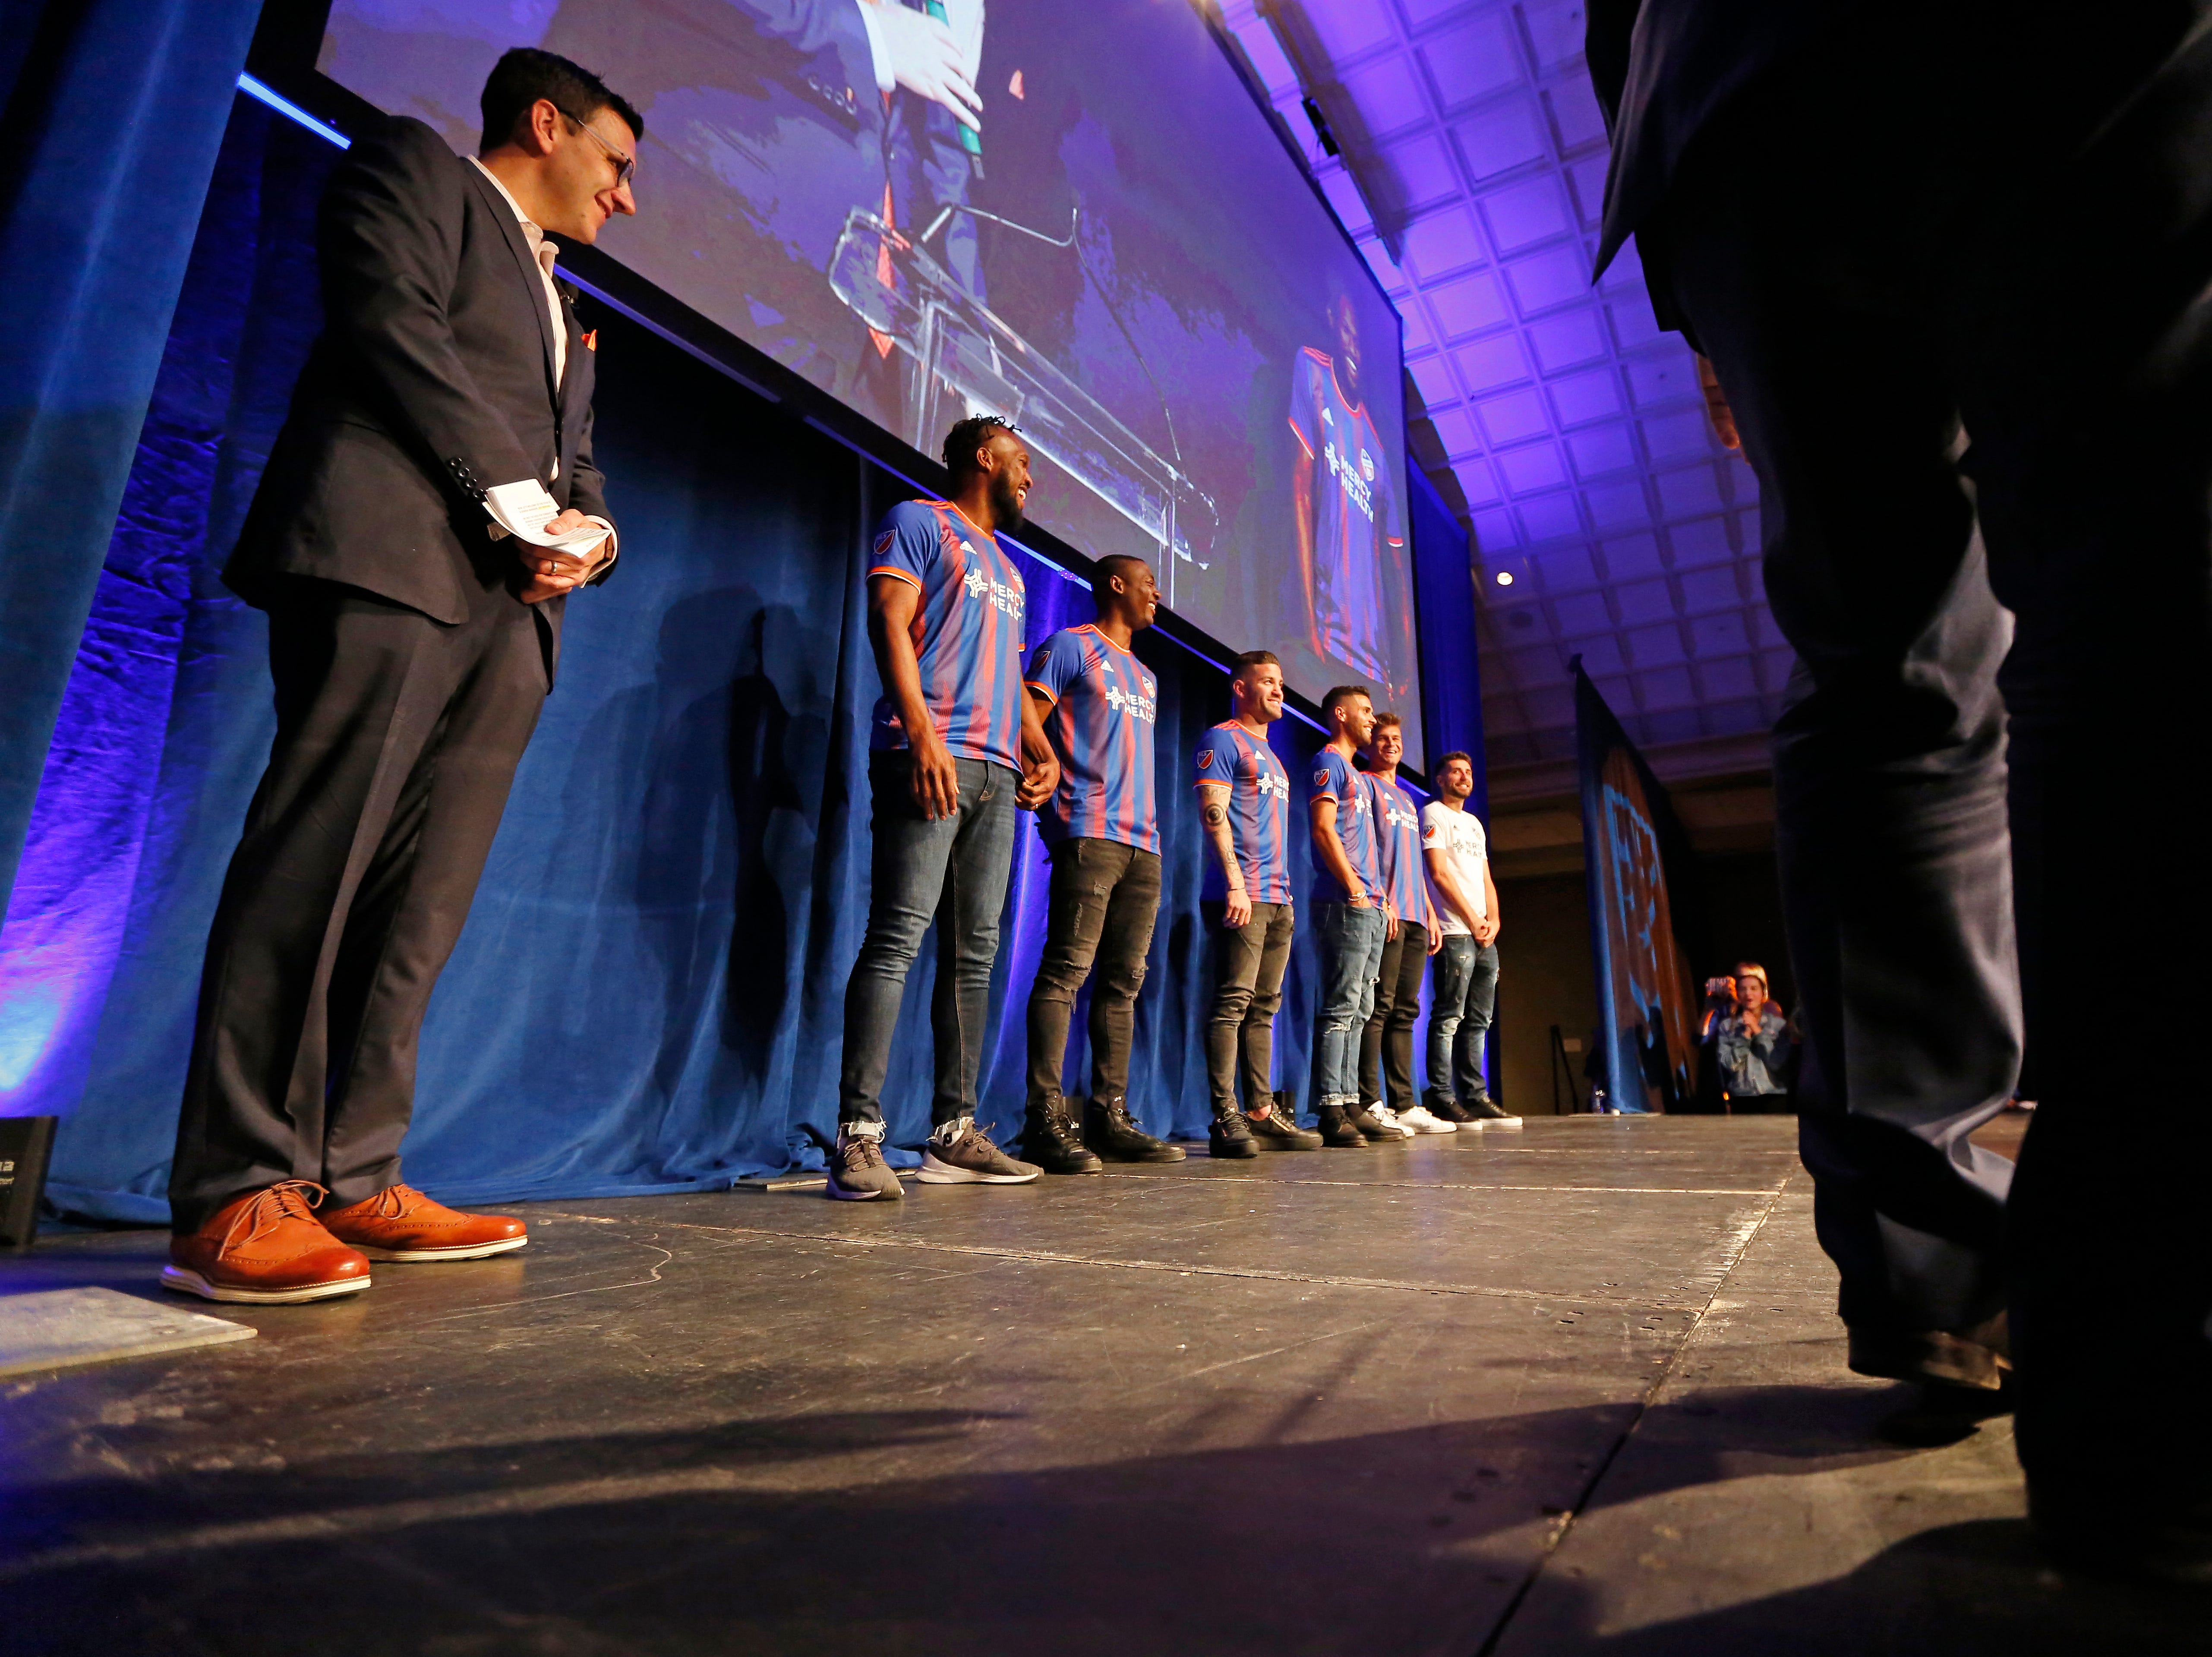 Player representatives take the stage in the new jerseys during an event to unveil FC Cincinnati's jersey for the team's inaugural season in Major League Soccer at the Music Hall Ballroom in the Over-the-Rhine neighborhood of Cincinnati on Monday, Feb. 11, 2019.